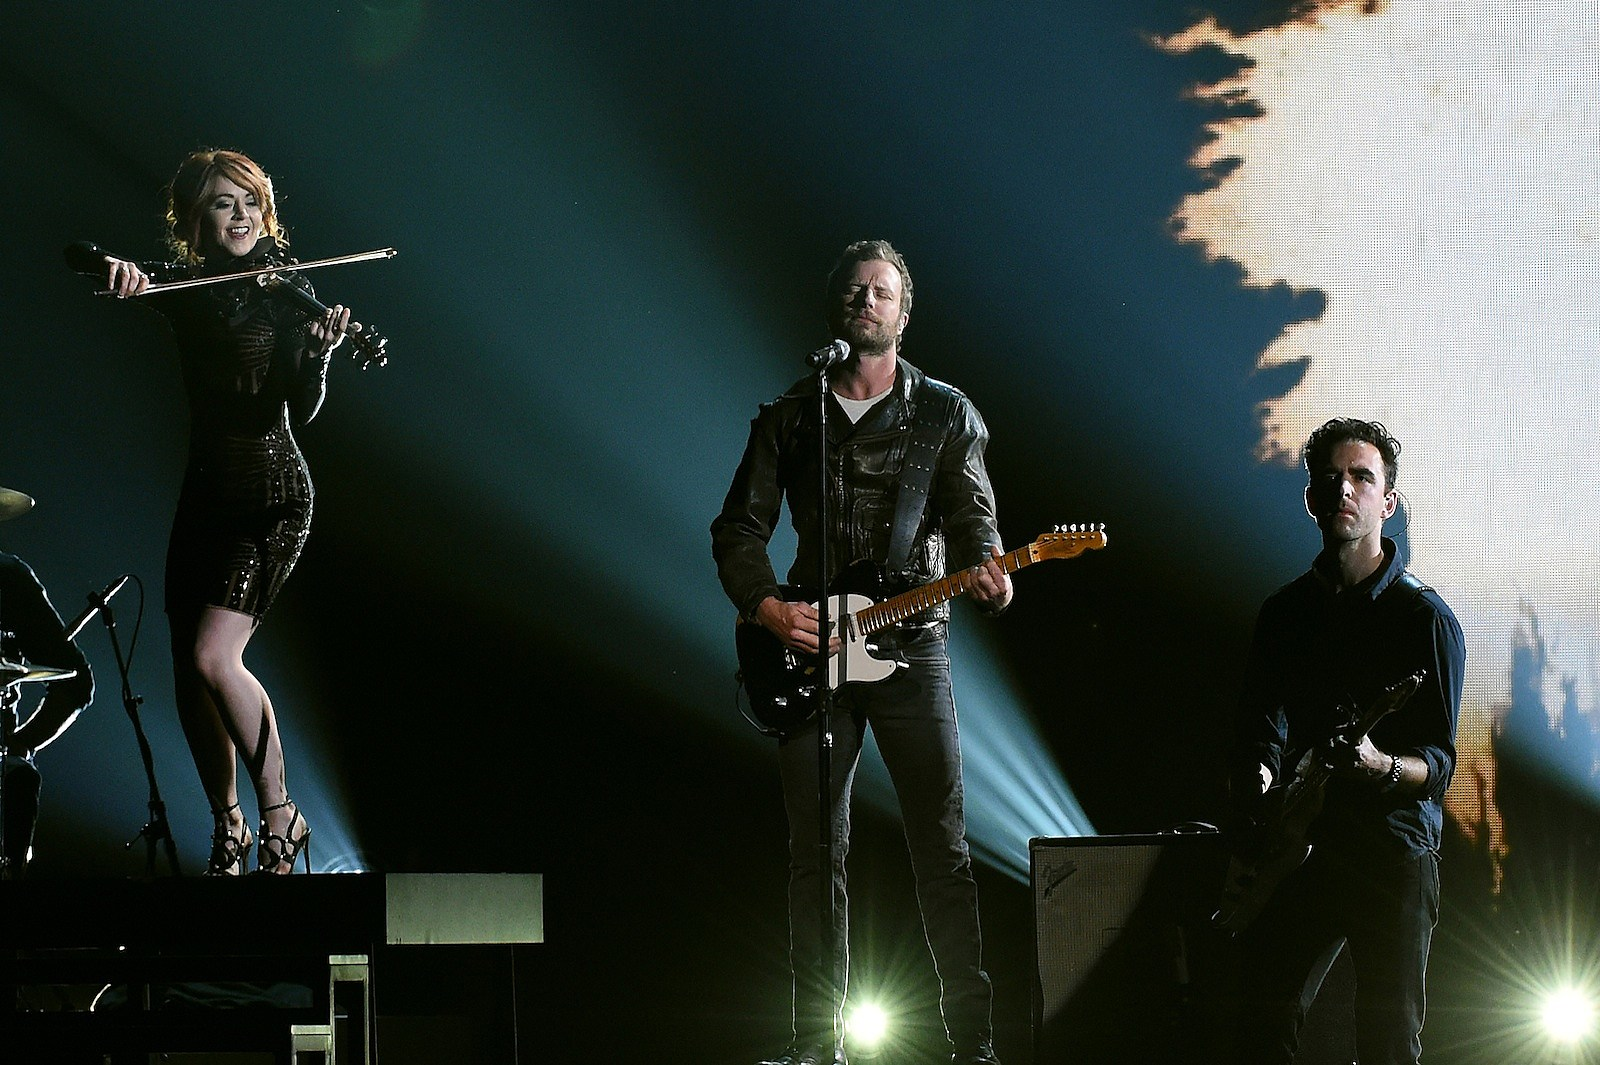 Bathroom Sink Youtube Cma poll: who gave the best performance at the 2015 cma awards?